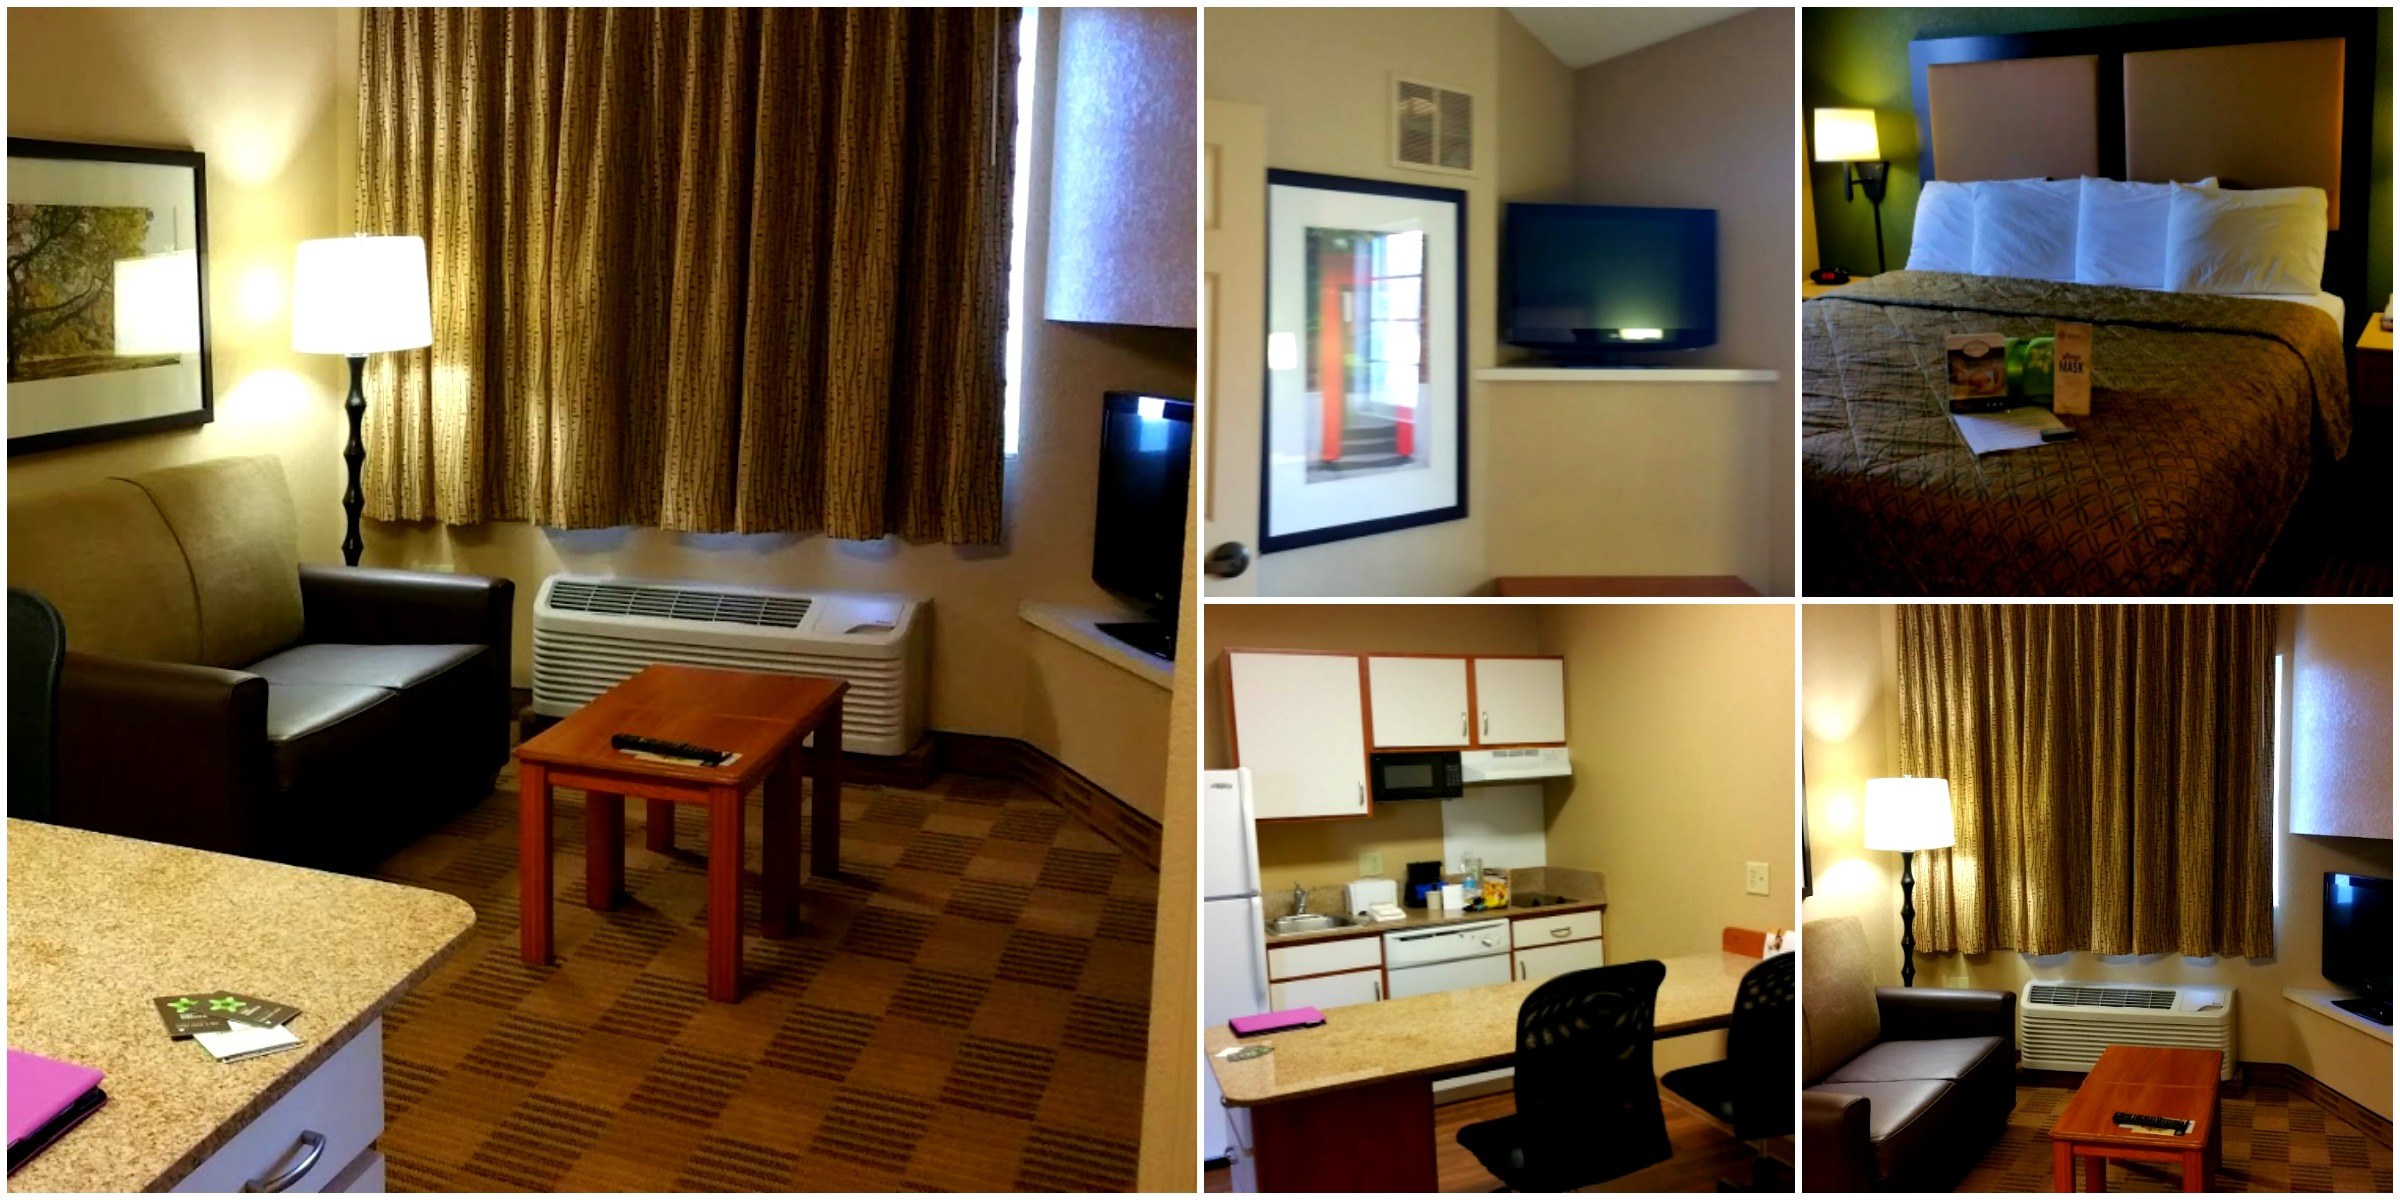 Extended Stay America, New York City Area - A Perfect Hotel For Savvy Travelers